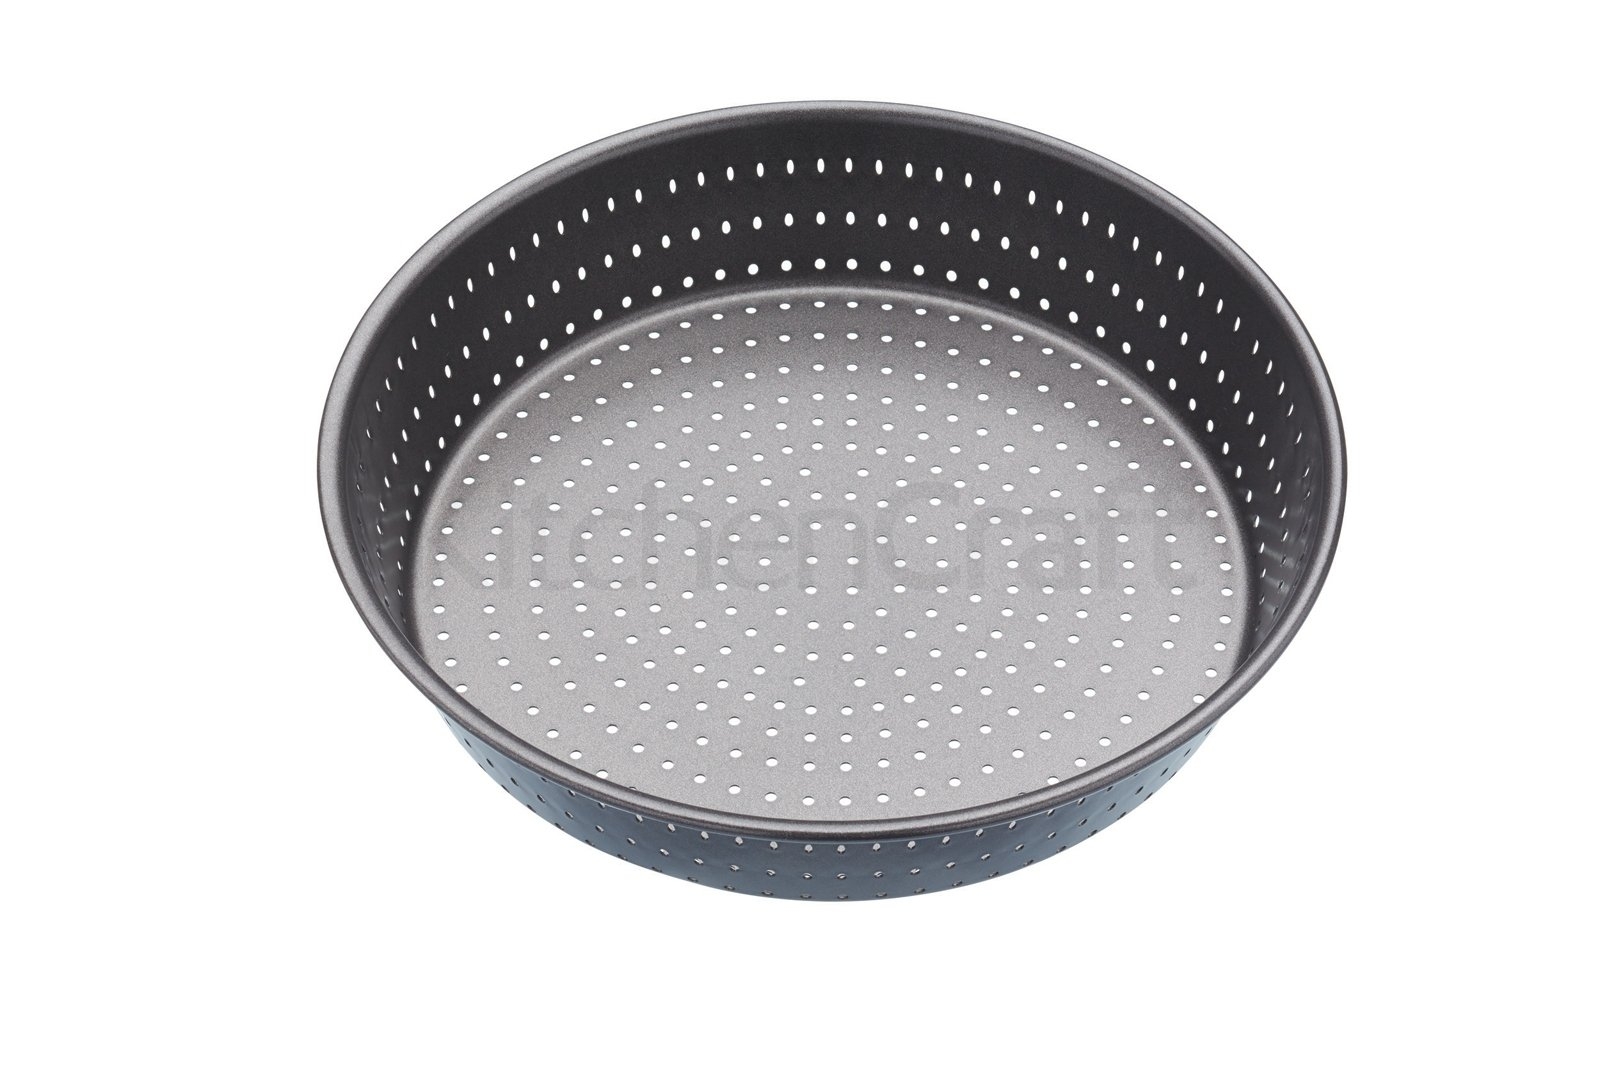 Masterclass Crusty Bake Non-stick Deep Pie Pan/tart Tin, 23x5cm, Sleeved